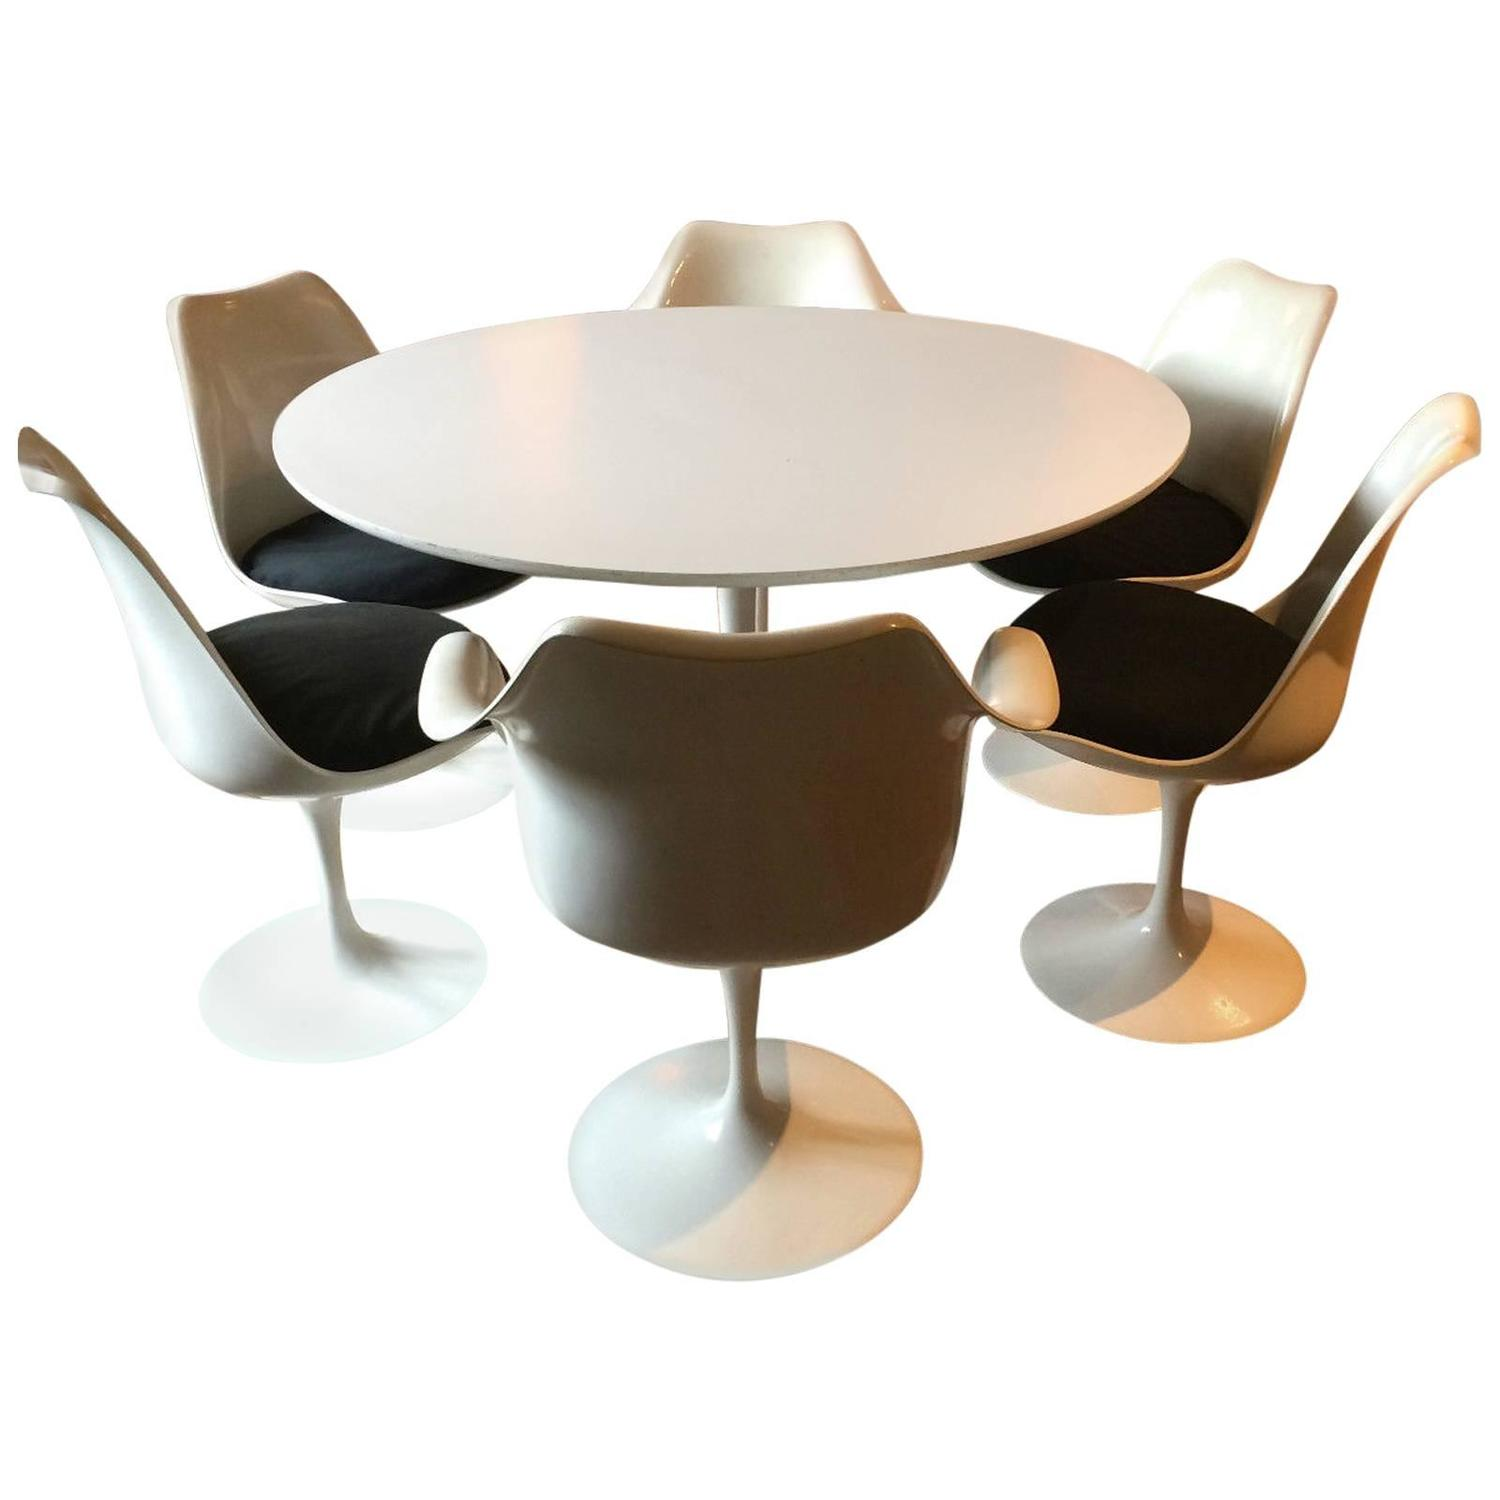 Eero saarinen oval tulip dining table and six dining for Tulip dining table